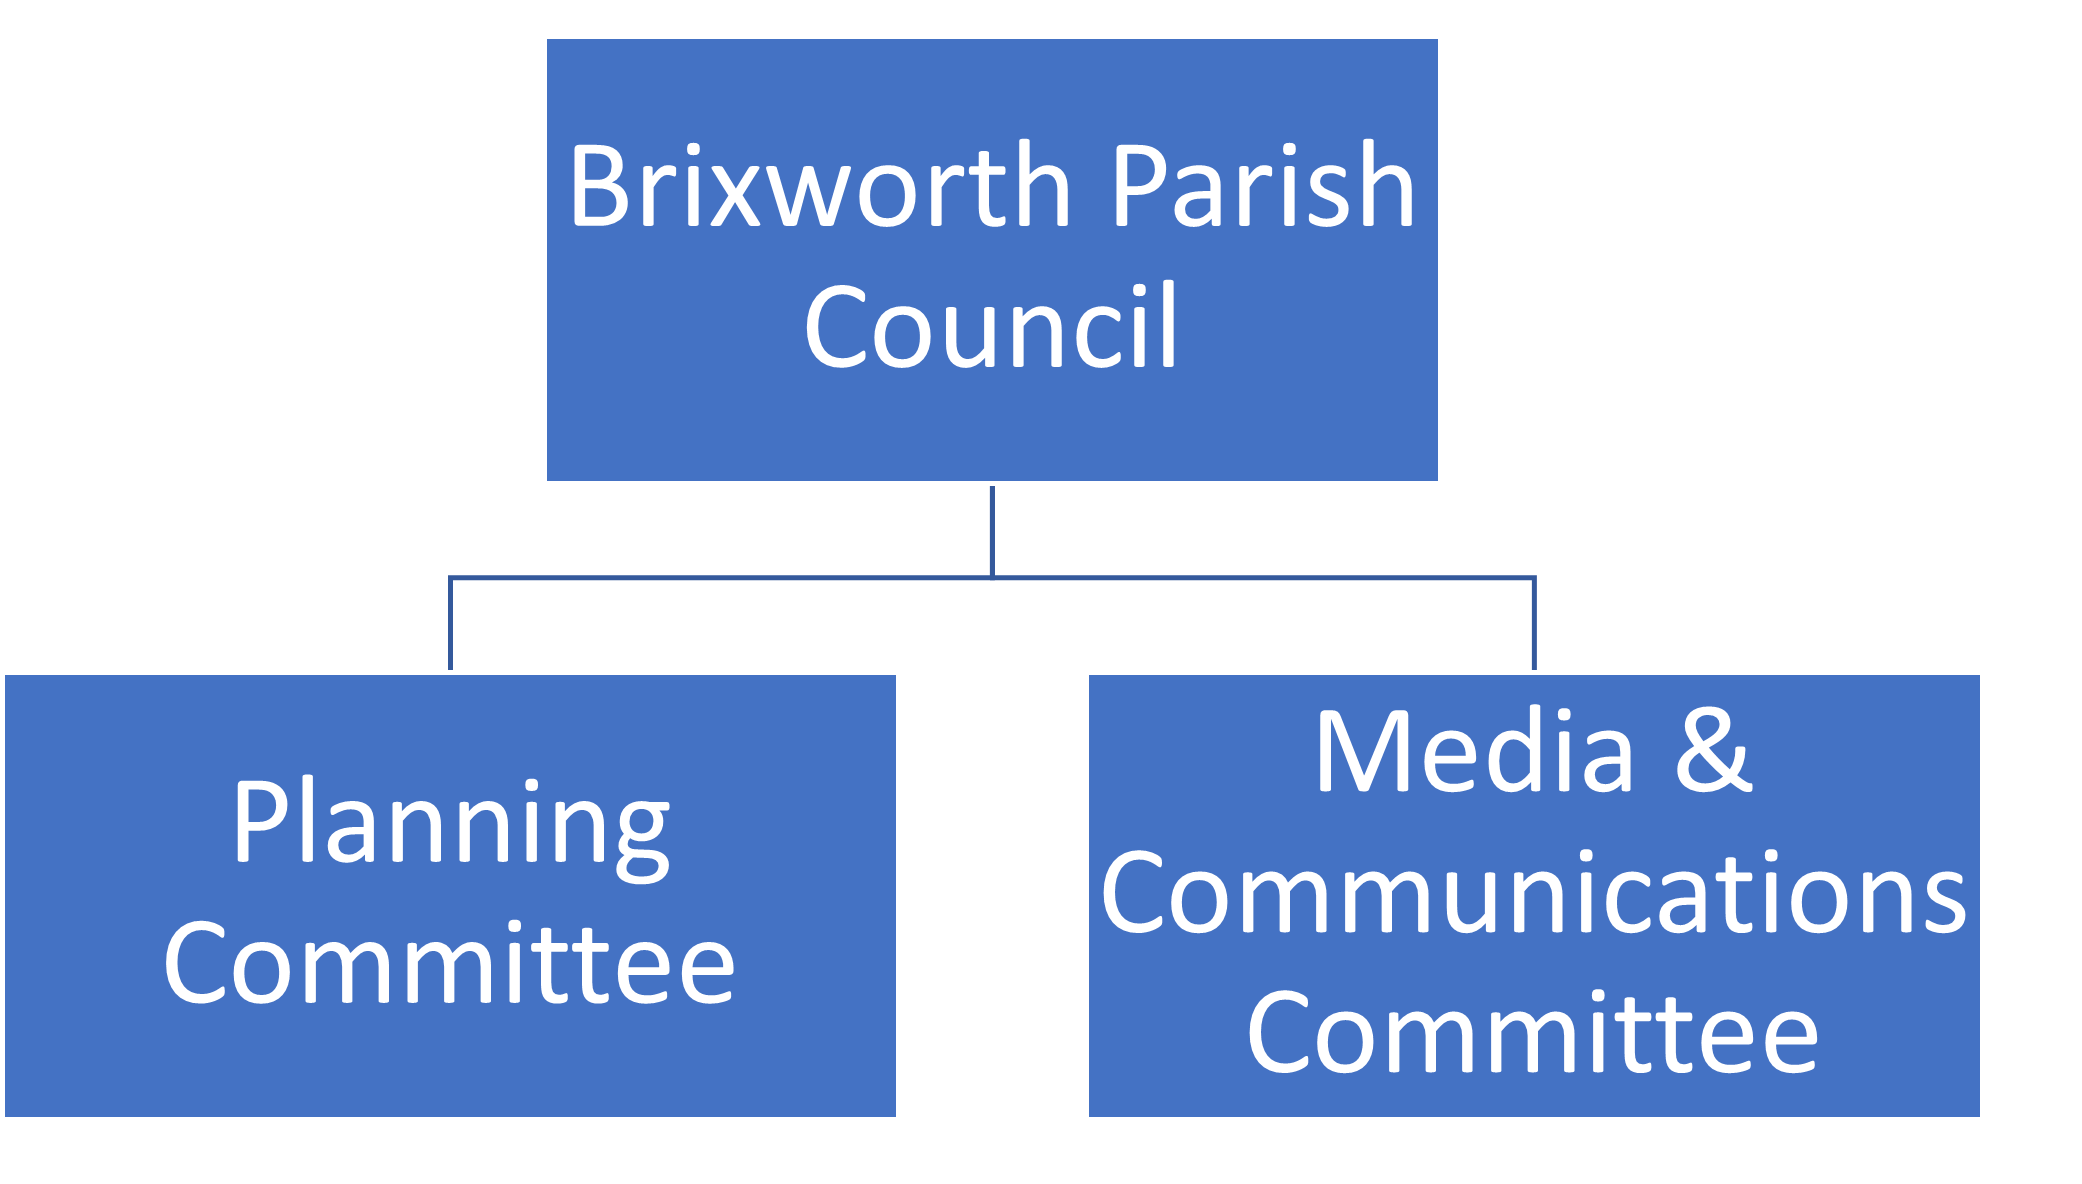 structure of Brixworth Parish Council